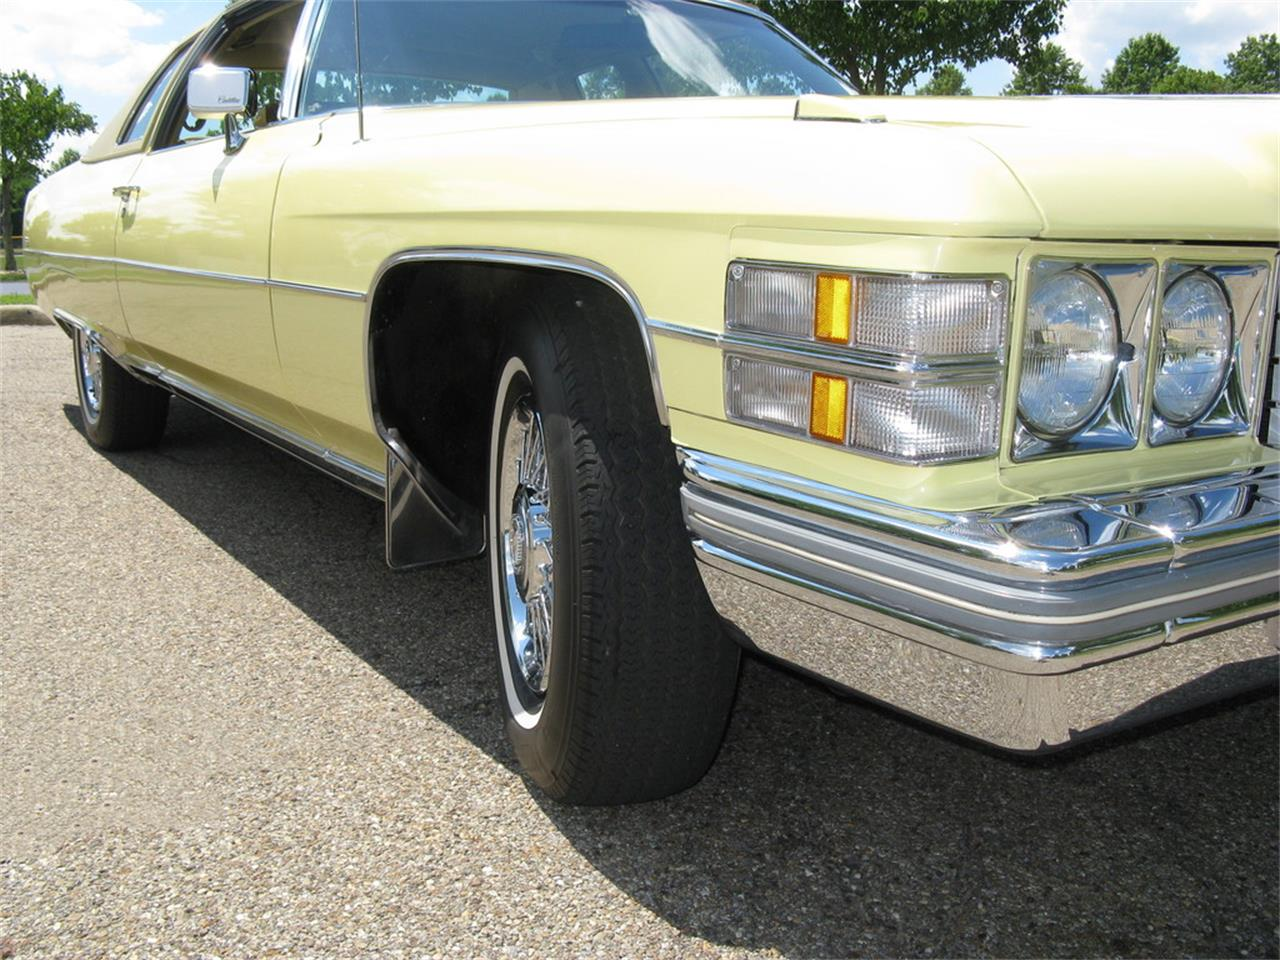 Large Picture of 1974 Cadillac Coupe DeVille located in Ohio - $13,500.00 - J3ZZ